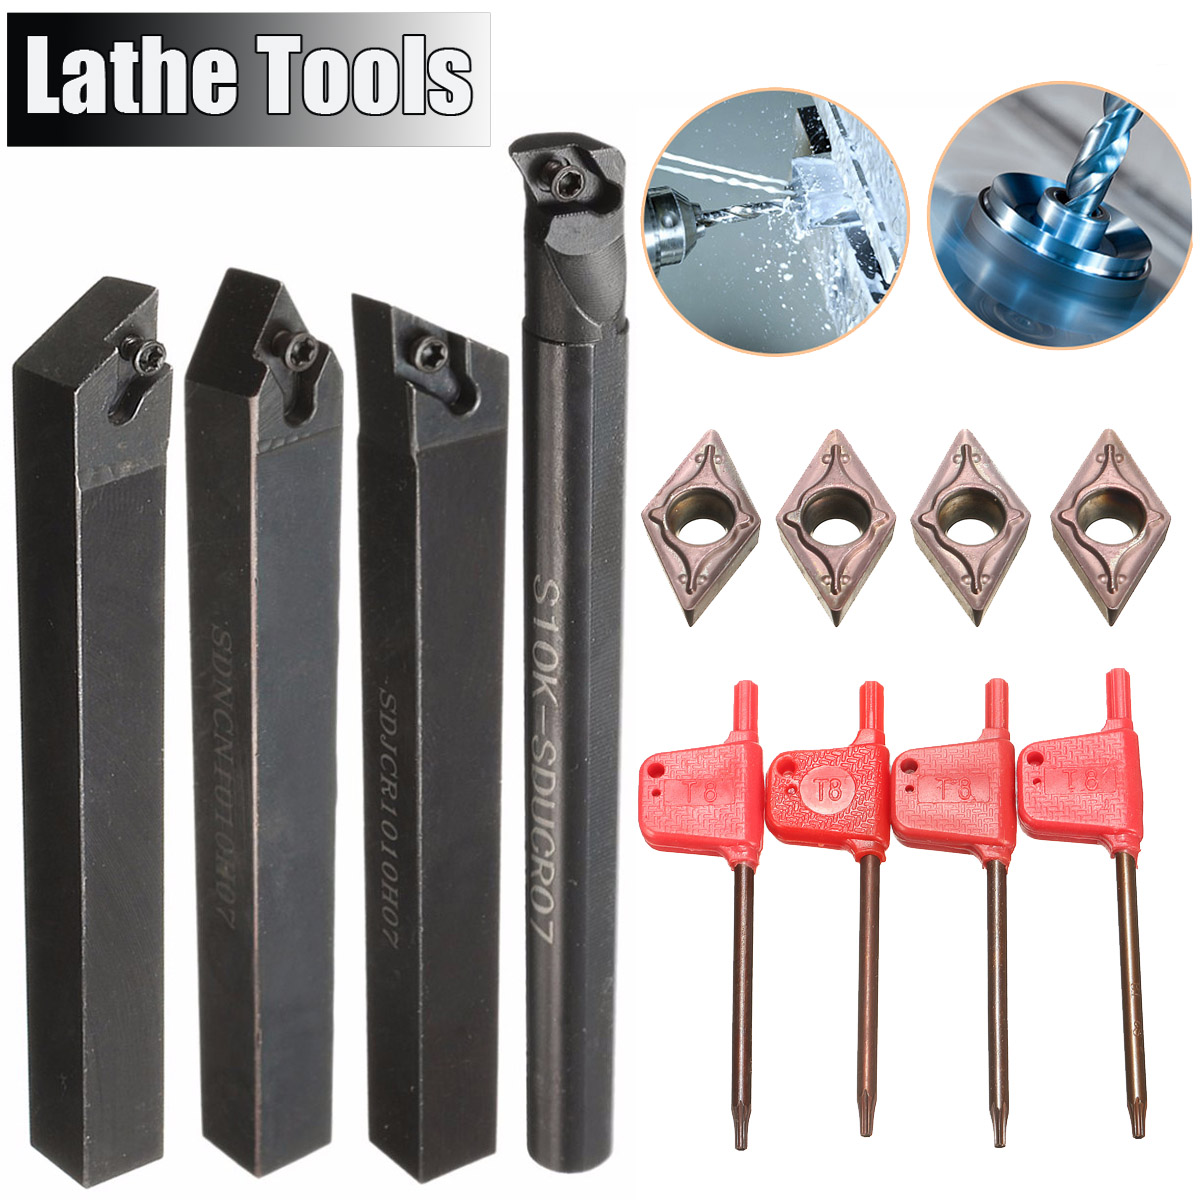 4Pcs Lathe Boring Bar Turning Tool Holder 10mm With 4pcs DCMT0702 Insert 100mm/125mm 4 Degree Turning Tool Set